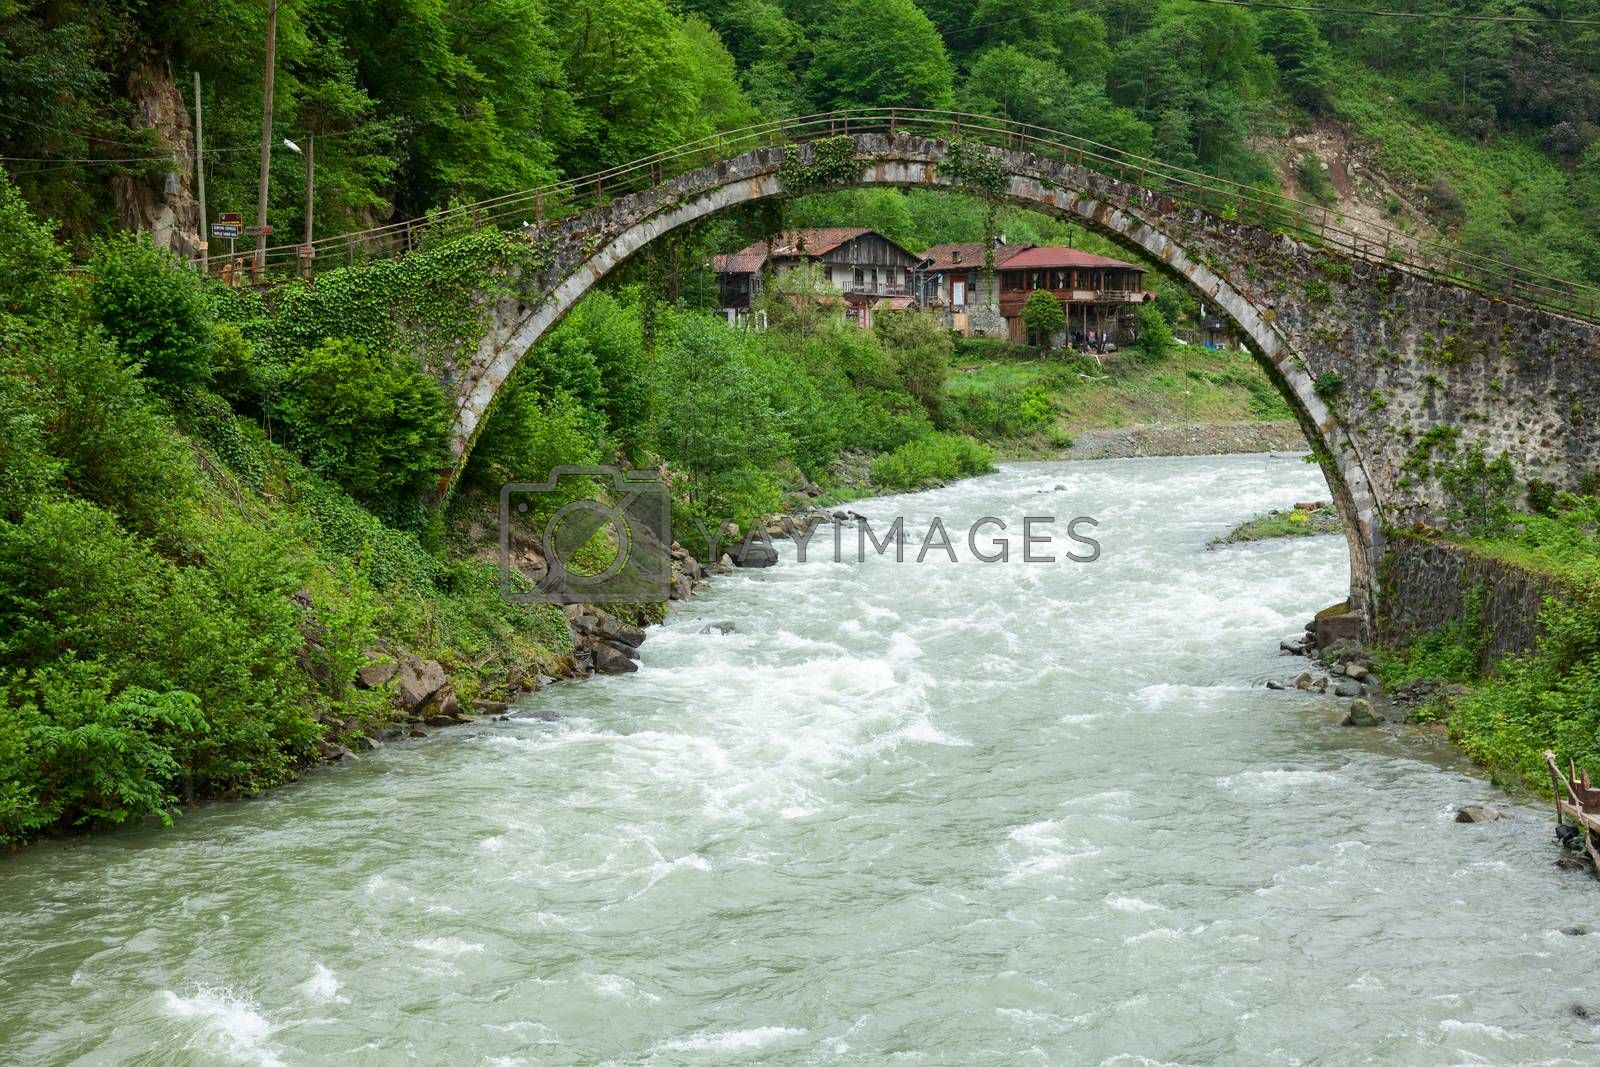 Senyuva Bridge is one of more than twenty well-preserved Ottoman-era arched bridges over the Firtina river near town of Caml��hemsin in Rize Province at the eastern end of Turkey's Black Sea coast. Dated 1696 Senyuva Bridge is the largest and the oldest bridge in region.